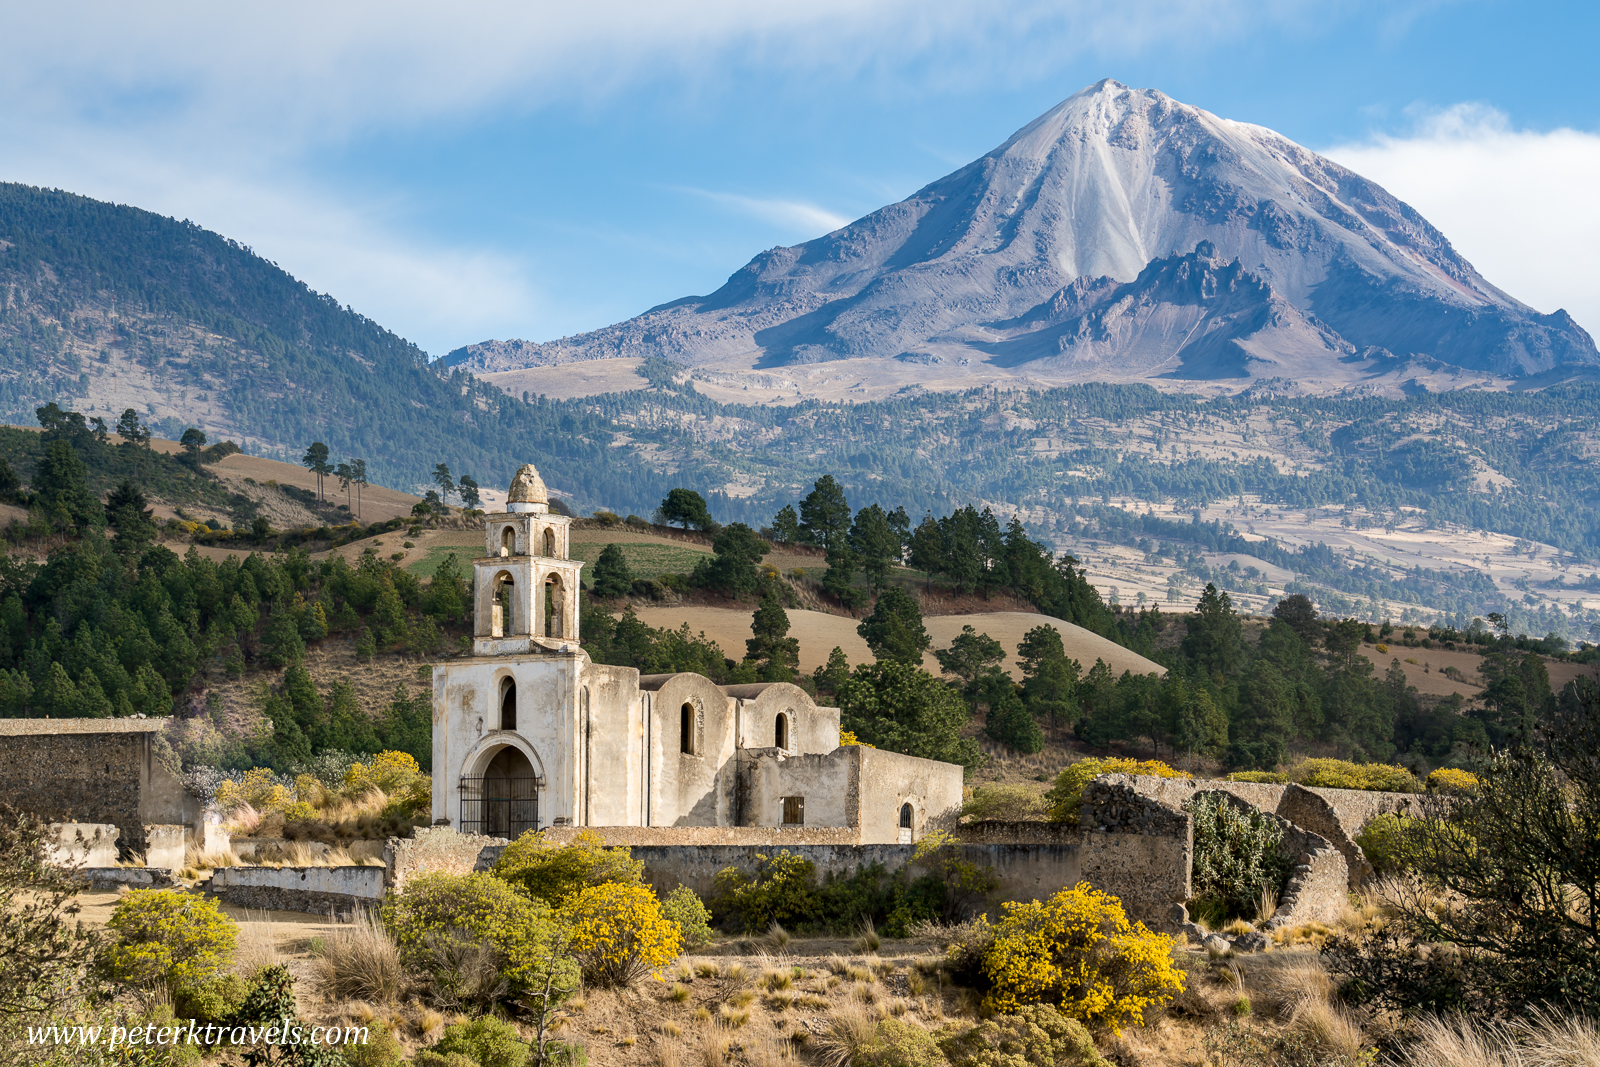 A Ruined Hacienda and Pico de Orizaba – Peter's Travel Blog